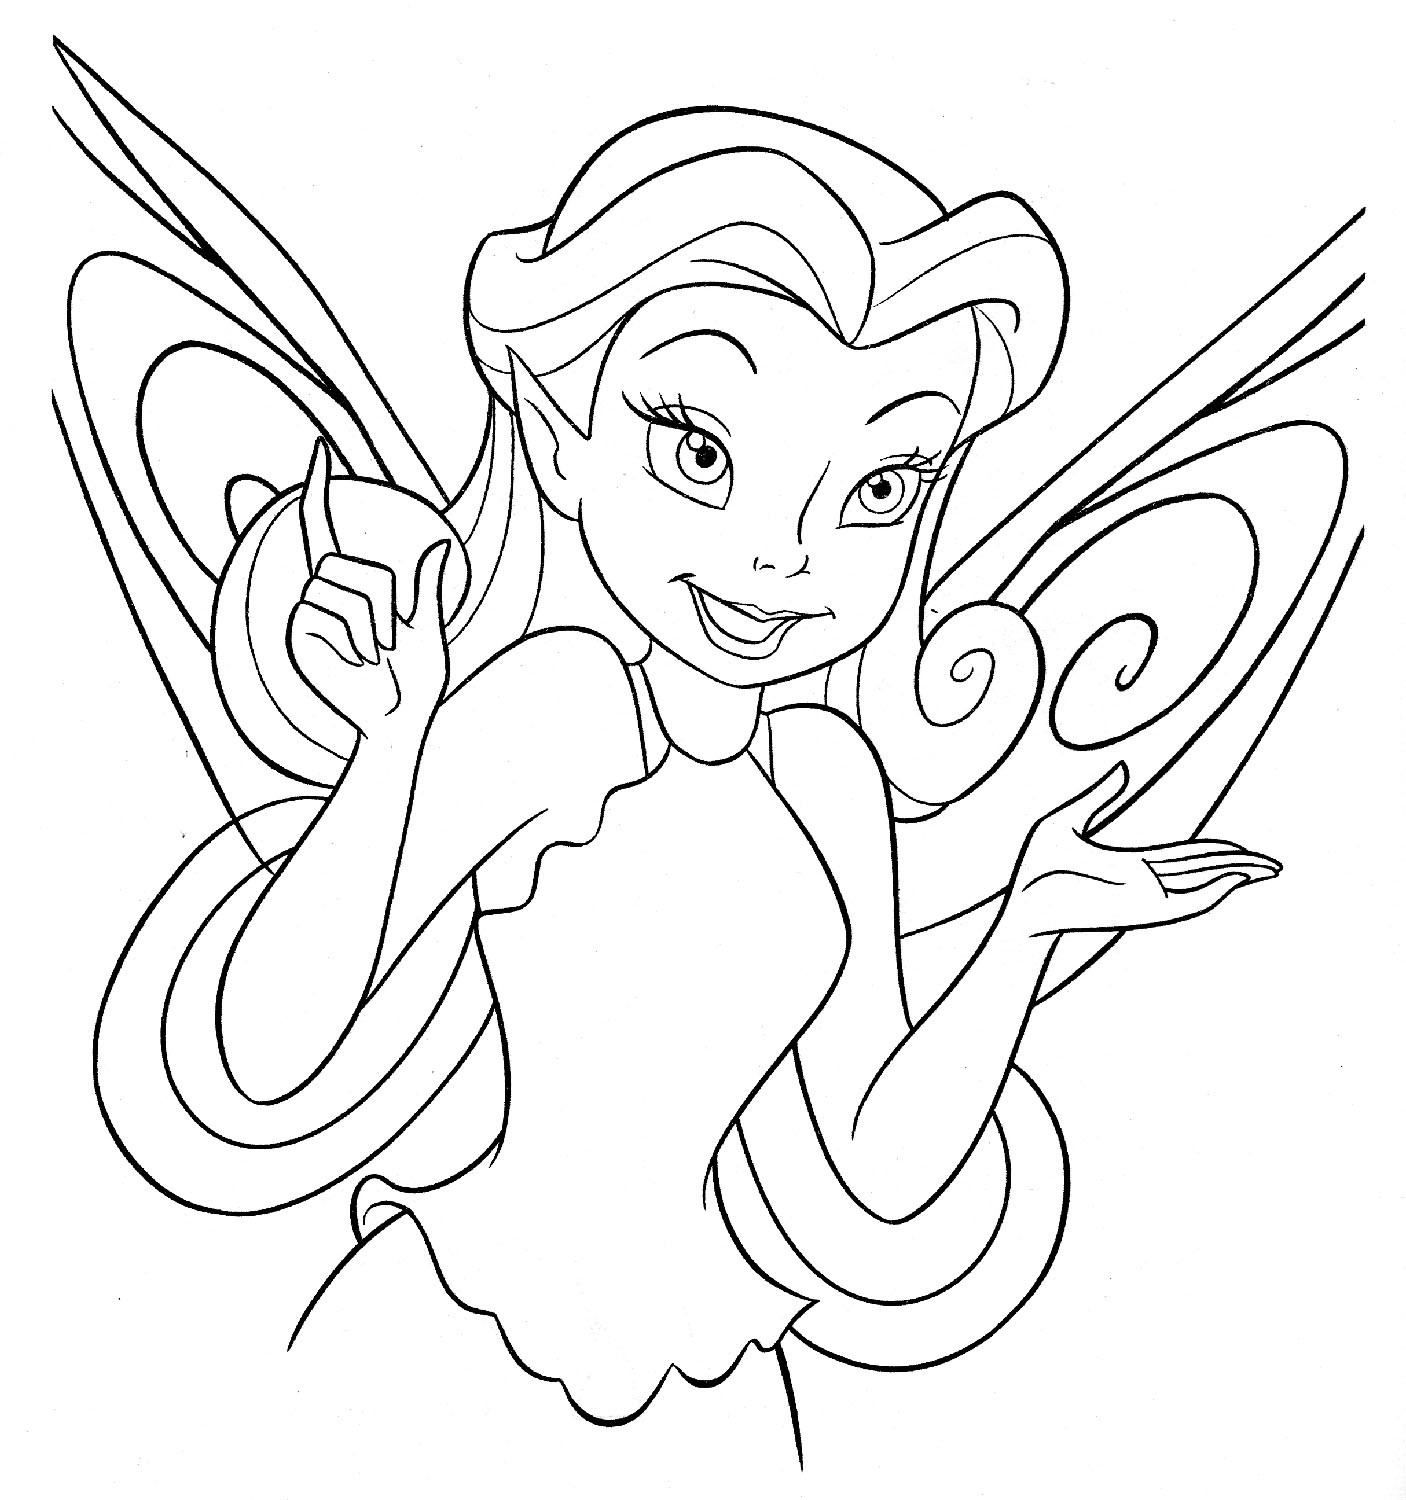 Best ideas about Disney Coloring Sheets For Girls . Save or Pin 36 Disney Tinkerbell coloring pages for Girls Now.